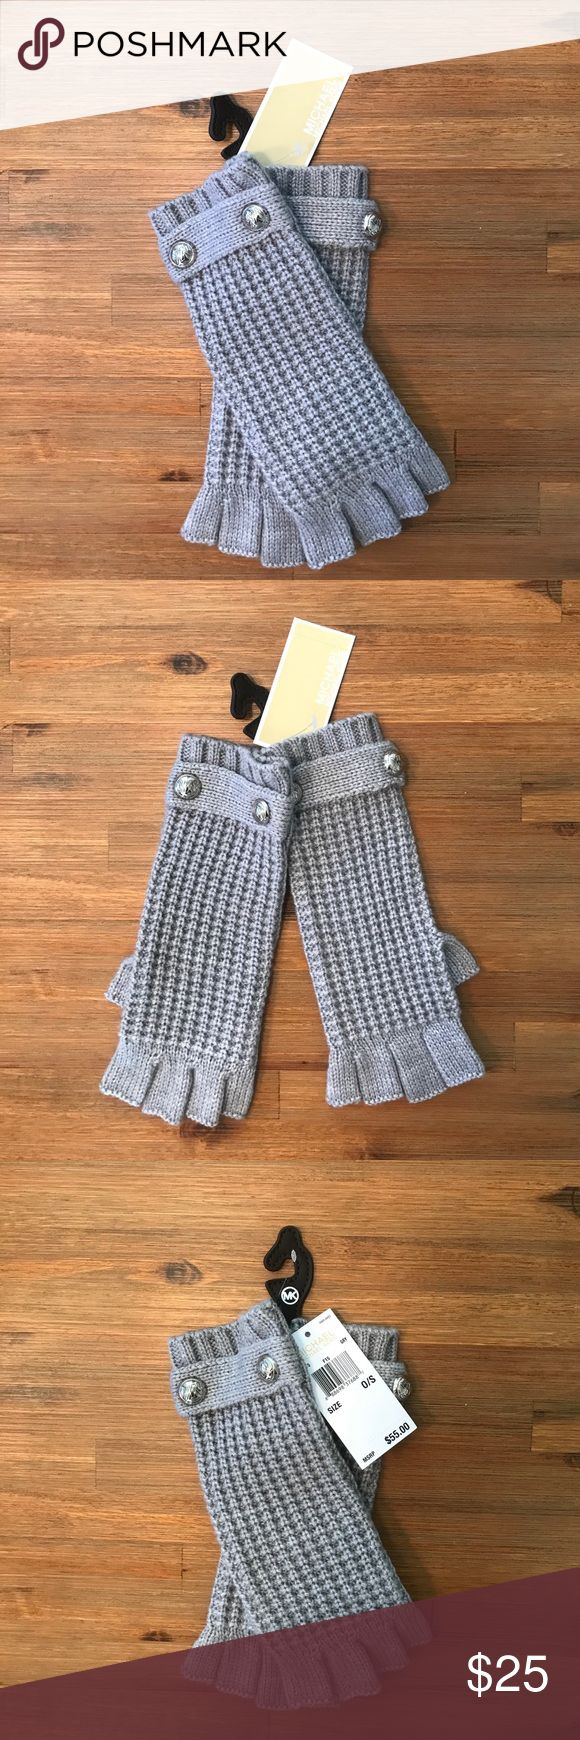 MICHAEL KORS GLOVES-NEW WITH TAGS! Cute fingerless Michael Kors Gloves! Never worn before, New with tags! These are neutral and go well with just about any outfit🙌🏽 Michael Kors Accessories Gloves & Mittens